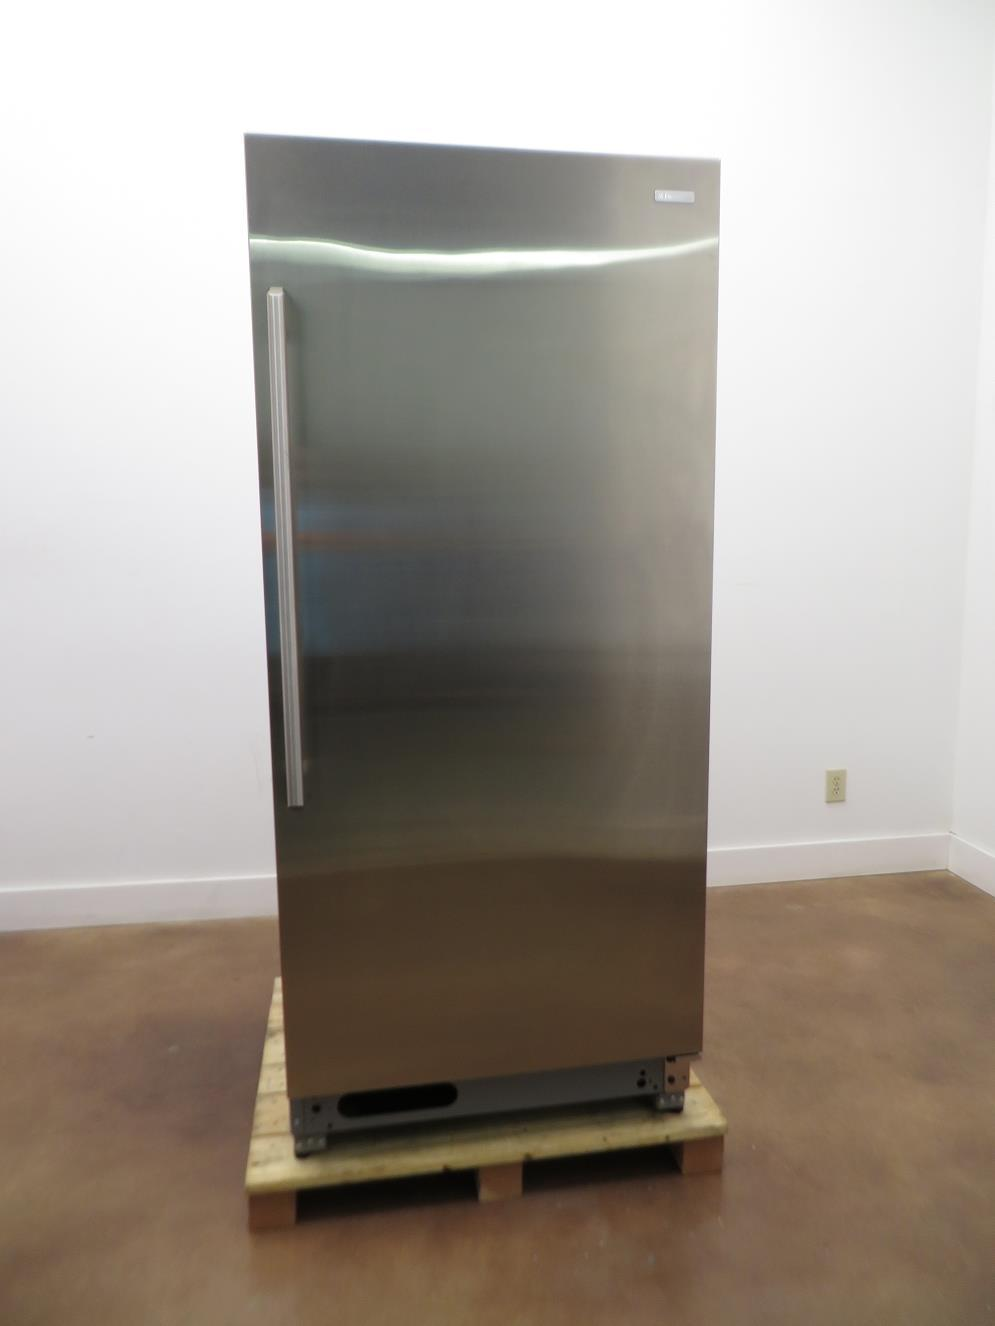 ELECTROLUX EI32AR80QS 32 Inch 18.6 cu. ft. Capacity Full Refrigerator Stainless - ALSurplus AL